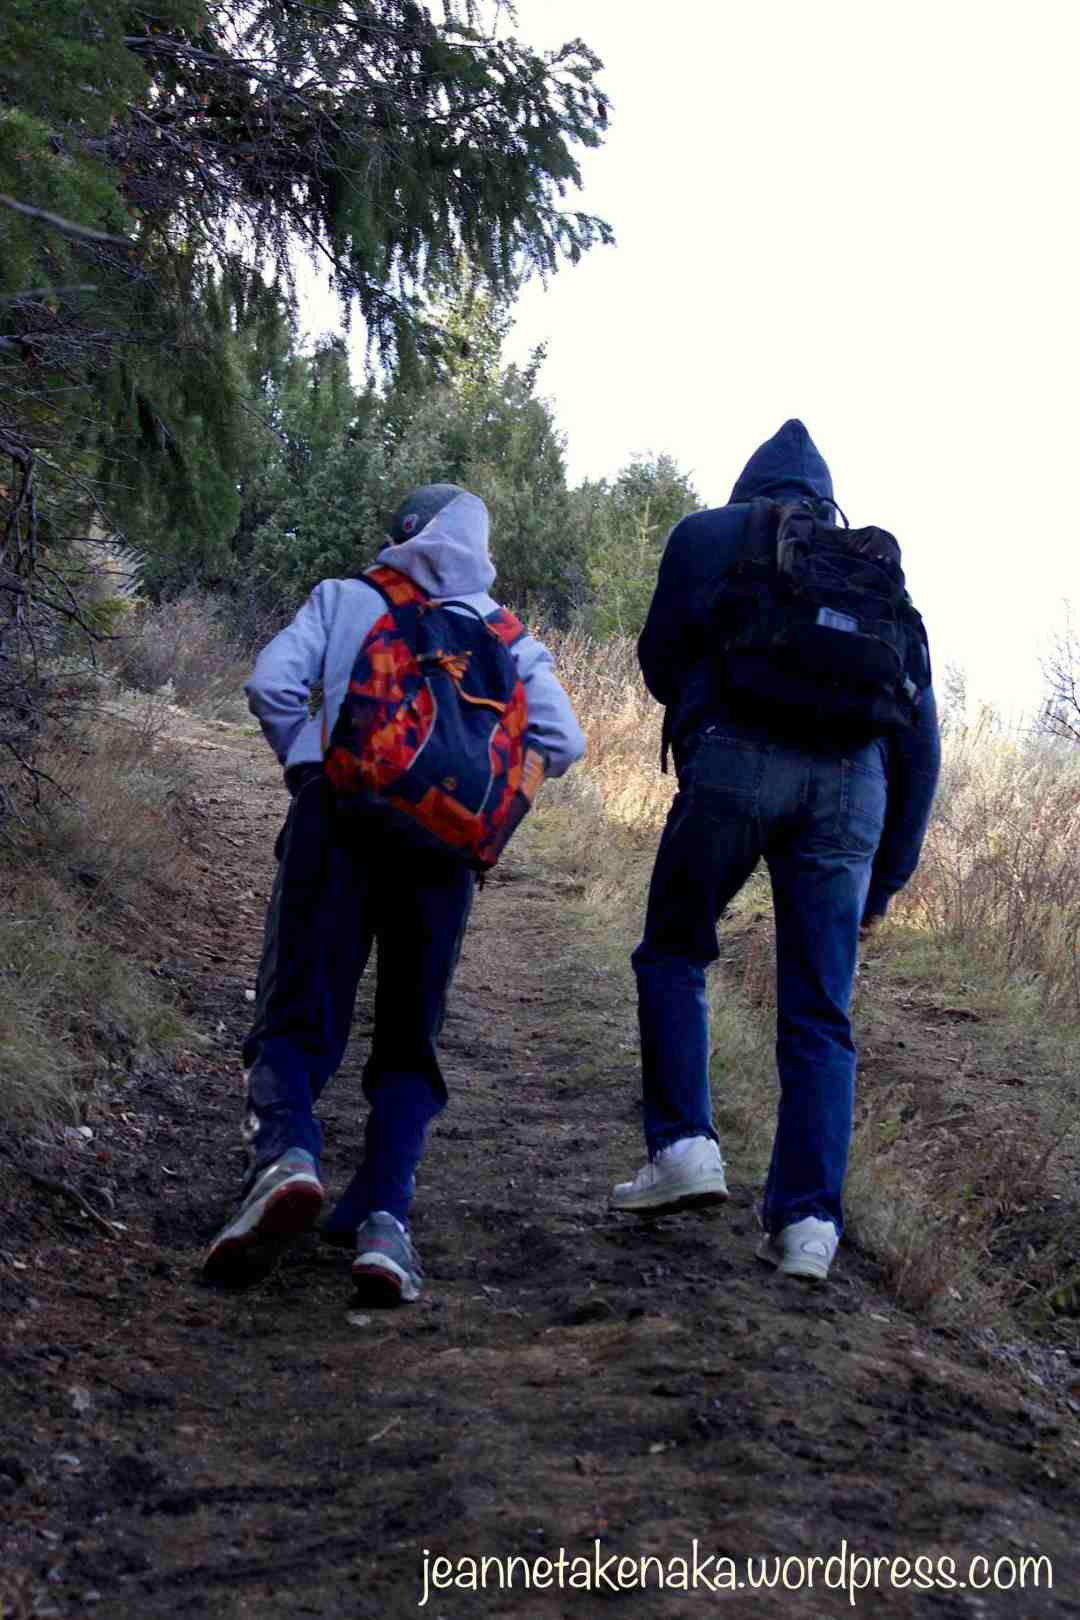 A father and son hiking up a path, their backs to the camera